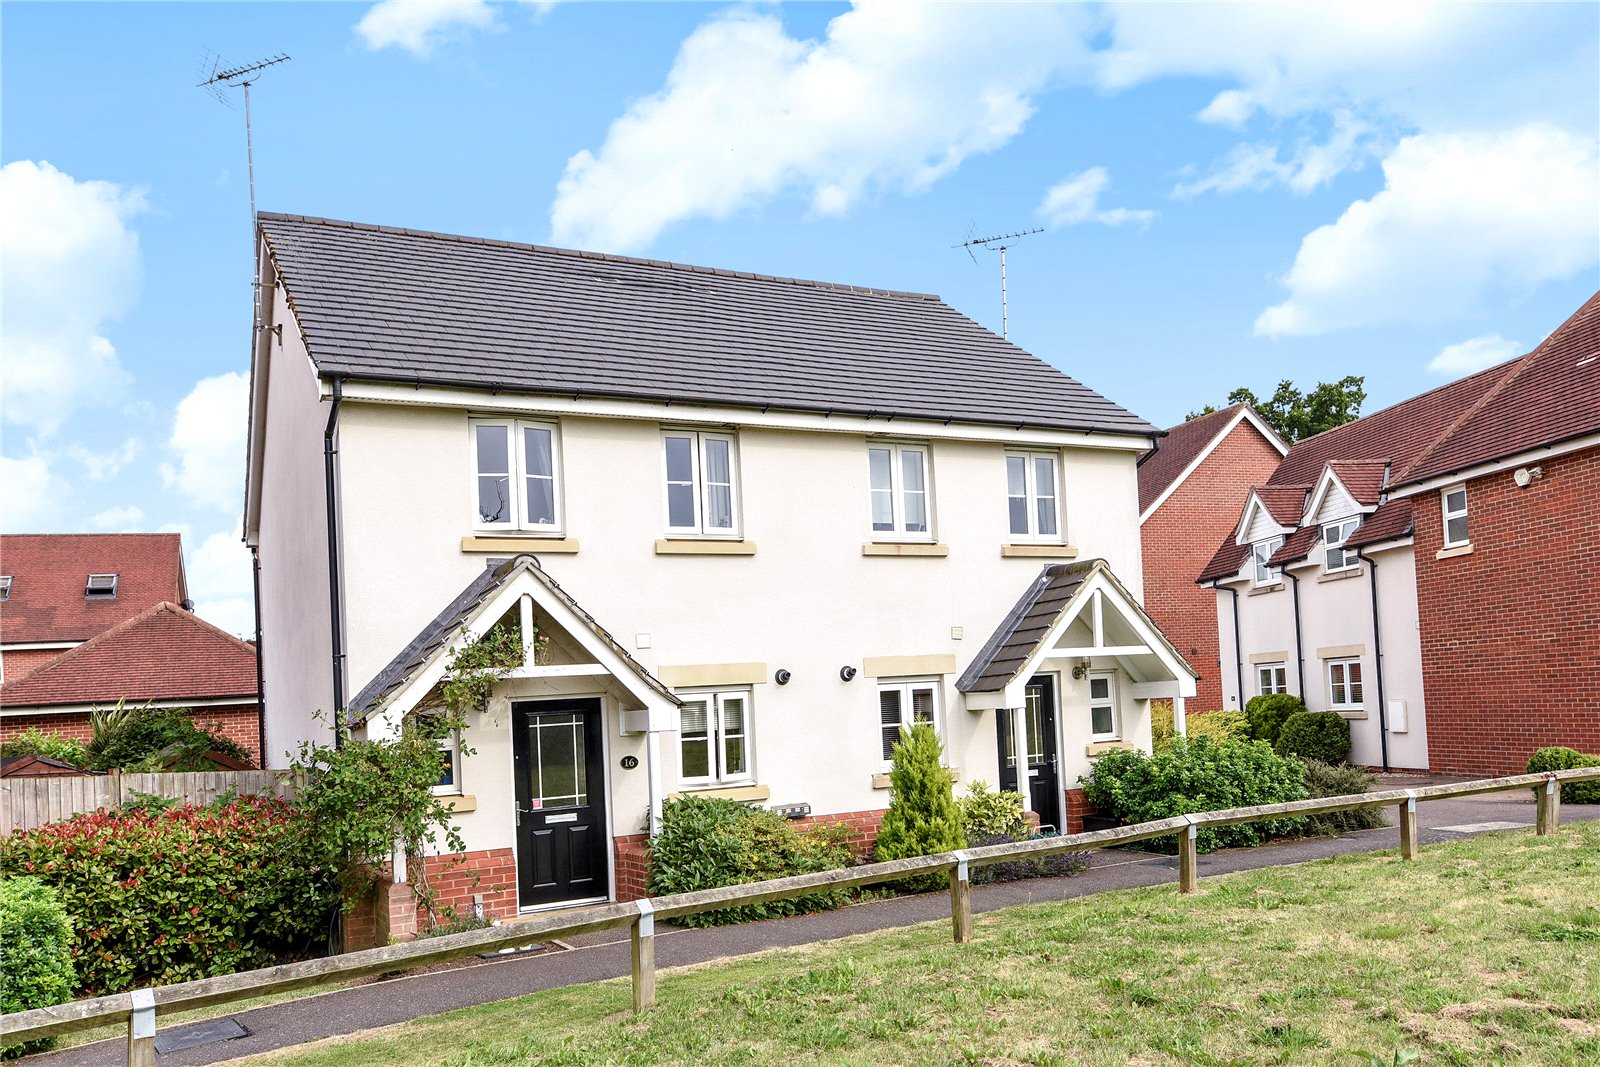 2 Bedrooms Semi Detached House for sale in Wheatsheaf Close, Sindlesham, Wokingham, Berkshire, RG41